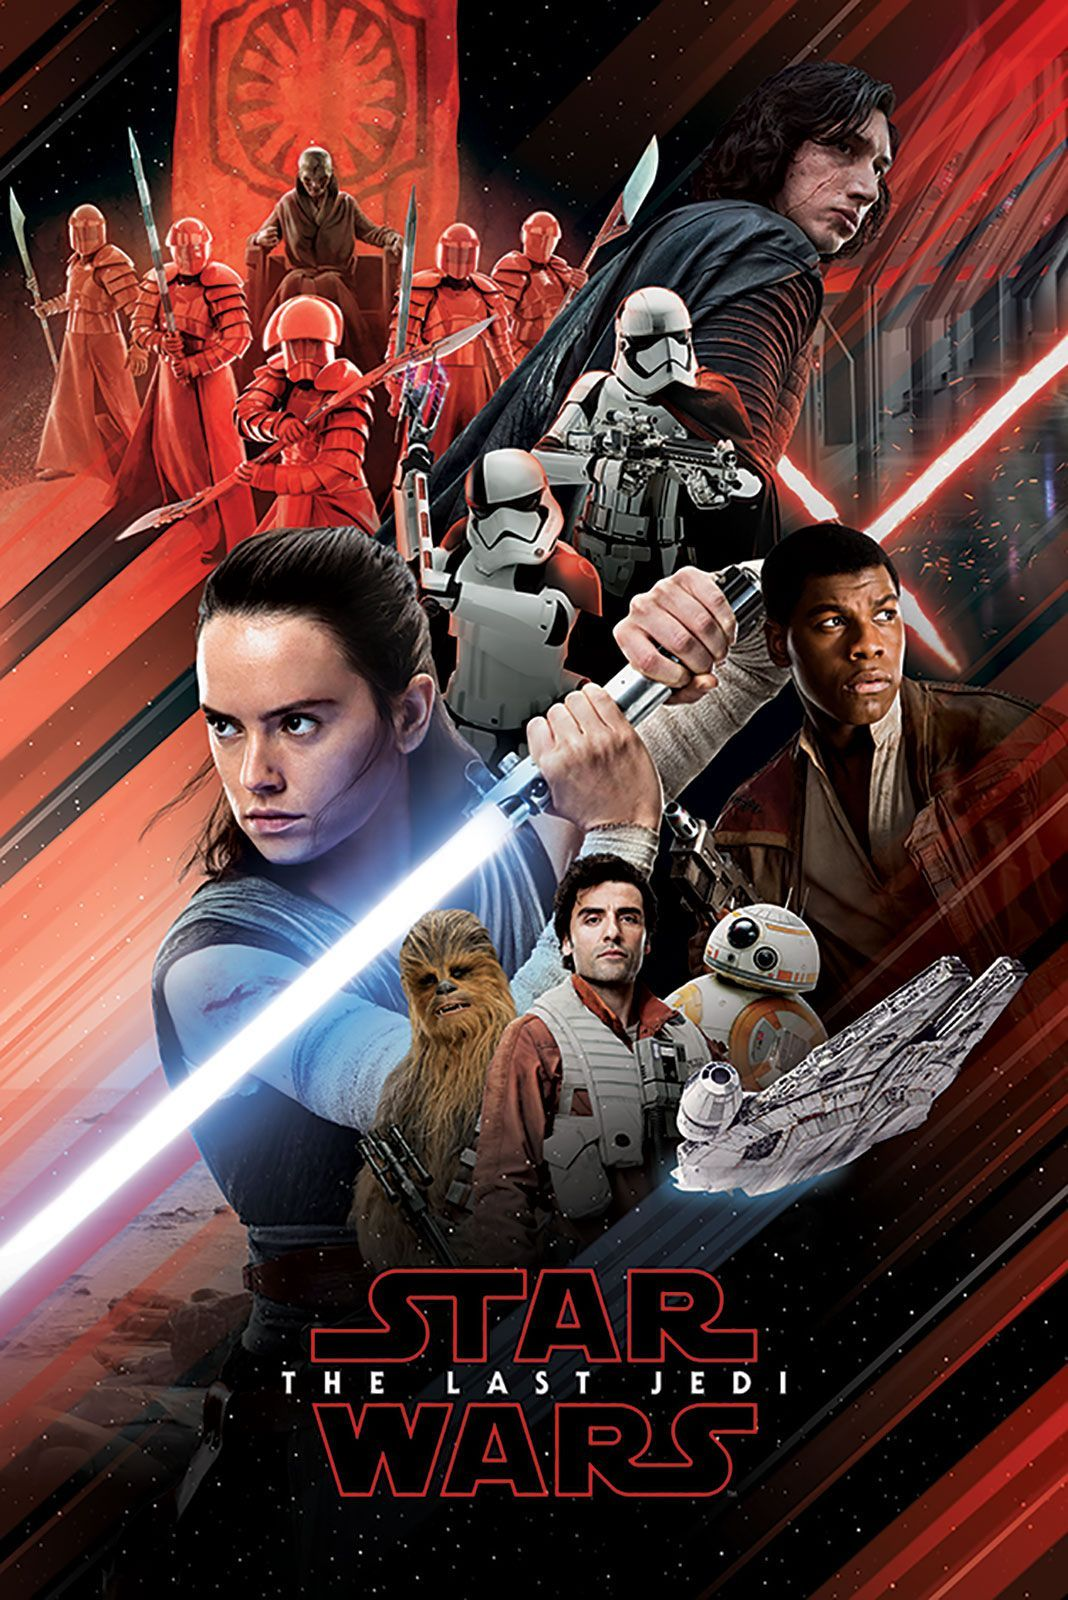 star wars characters 61x91 5cm movie posters